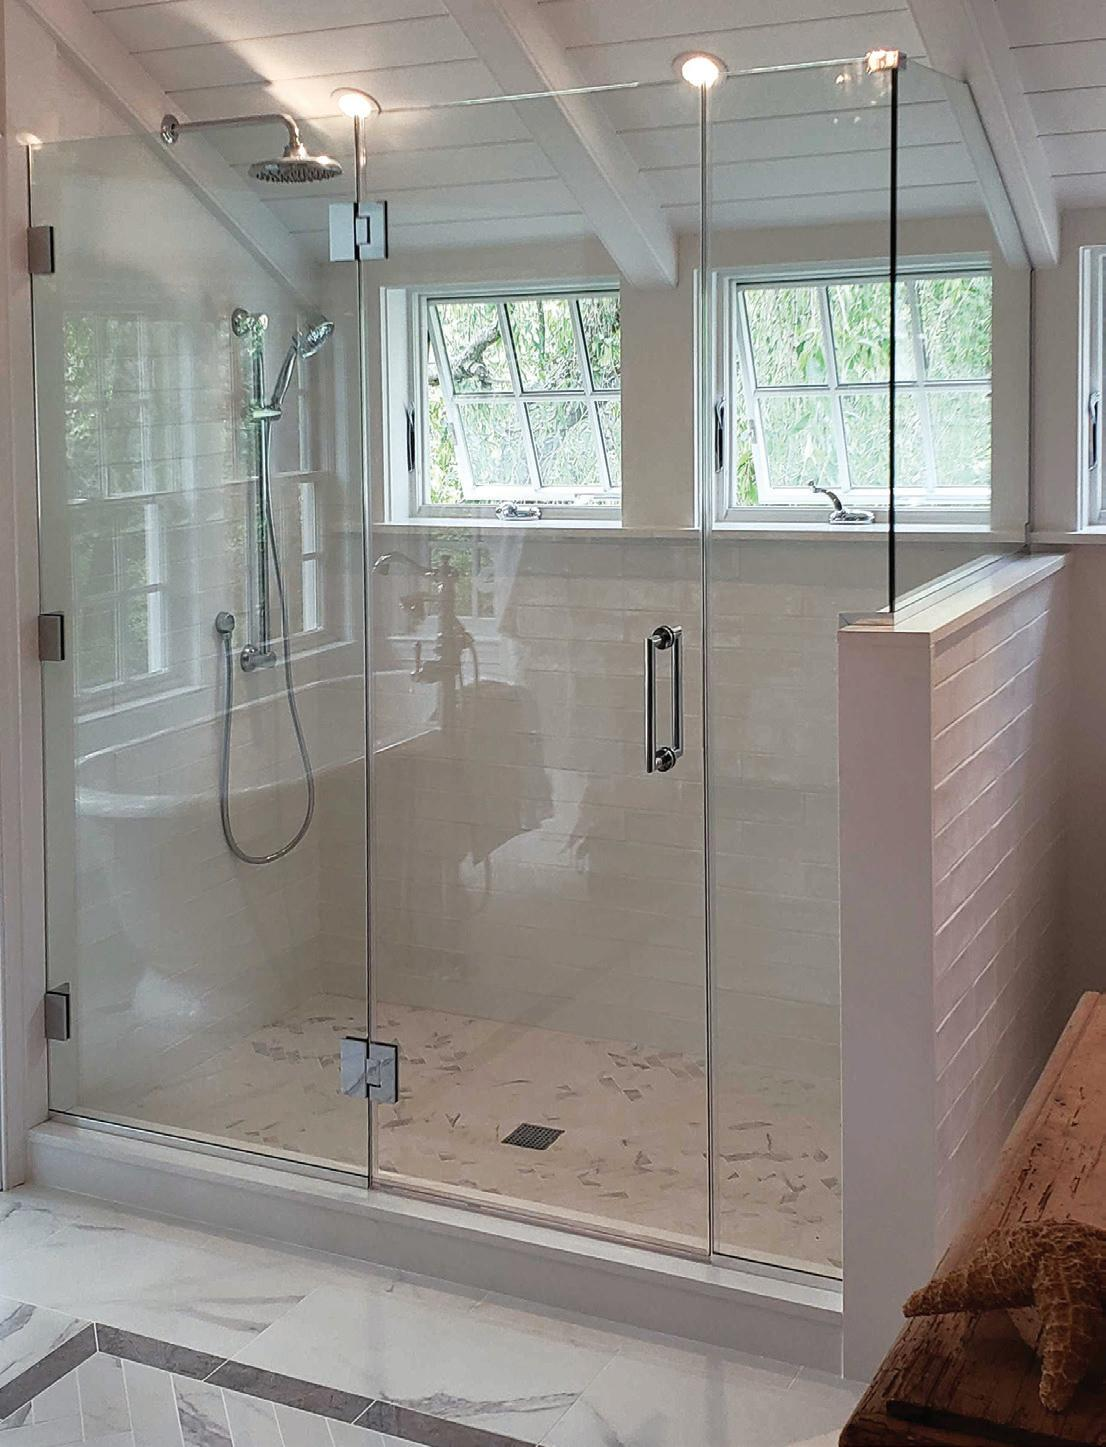 glass shower doors or shower curtains